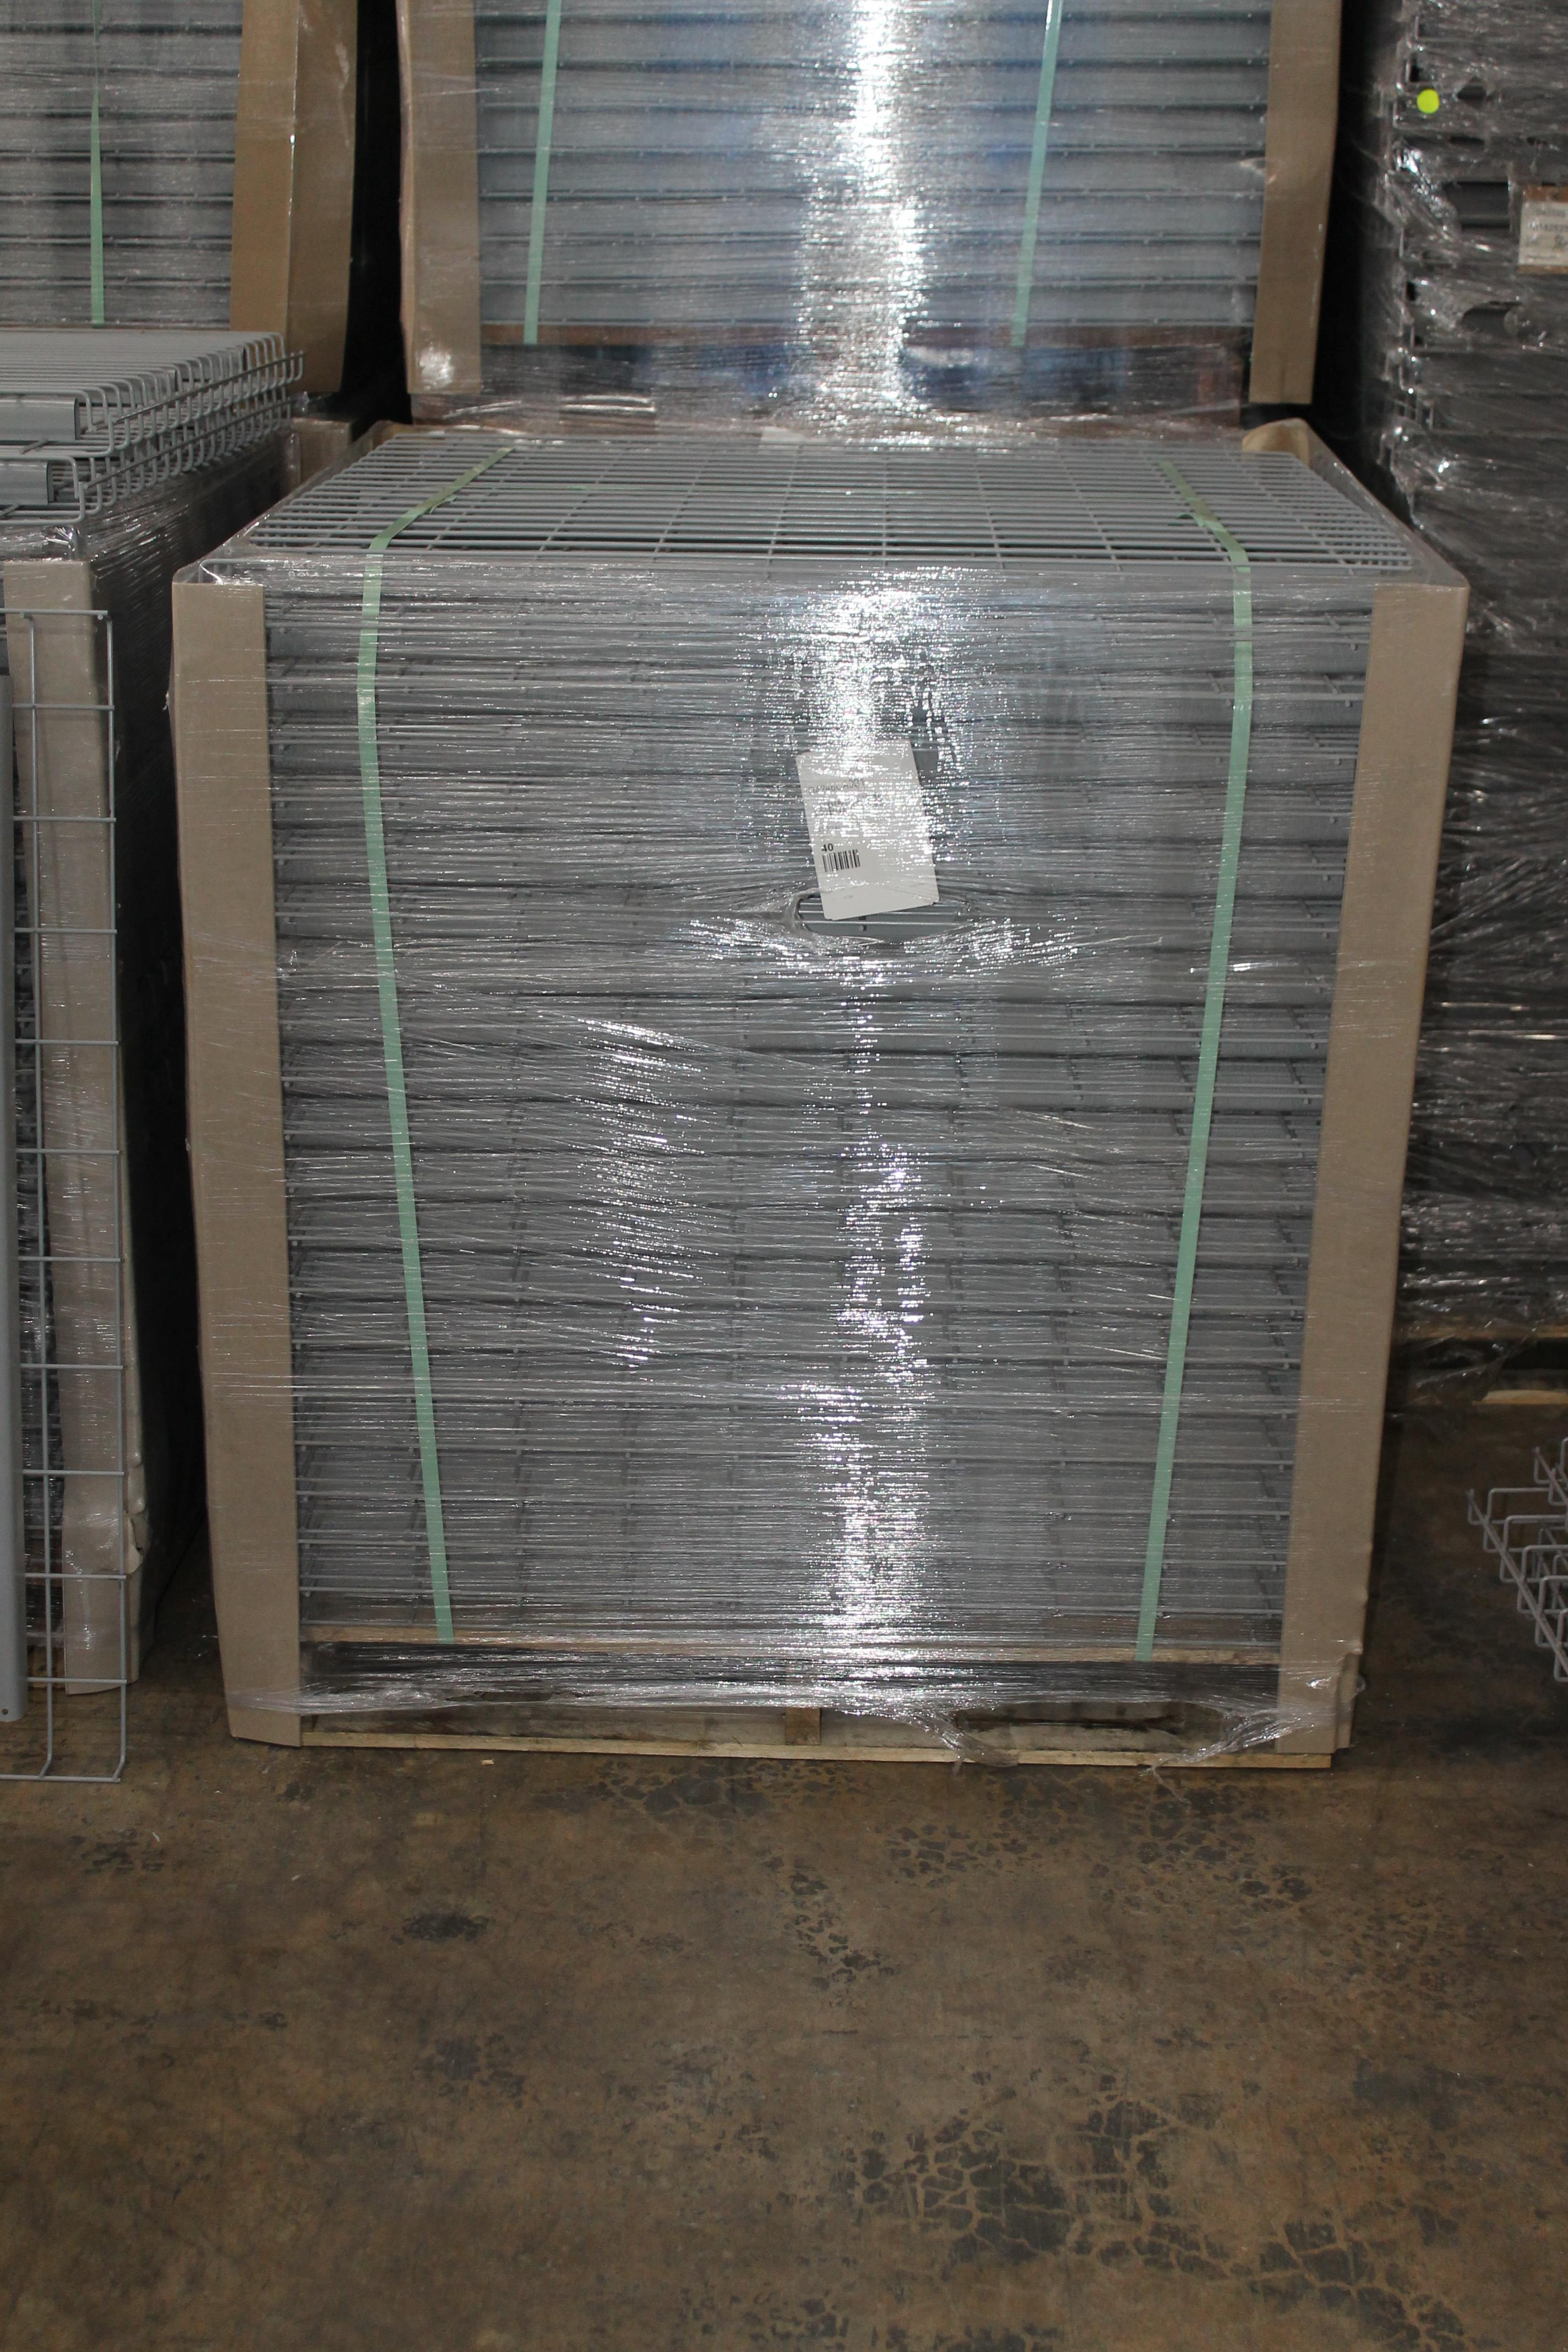 """NEW 120 PCS OF STANDARD 42"""" X 46"""" WIREDECK - 2200 LBS CAPACITY - Image 2 of 2"""